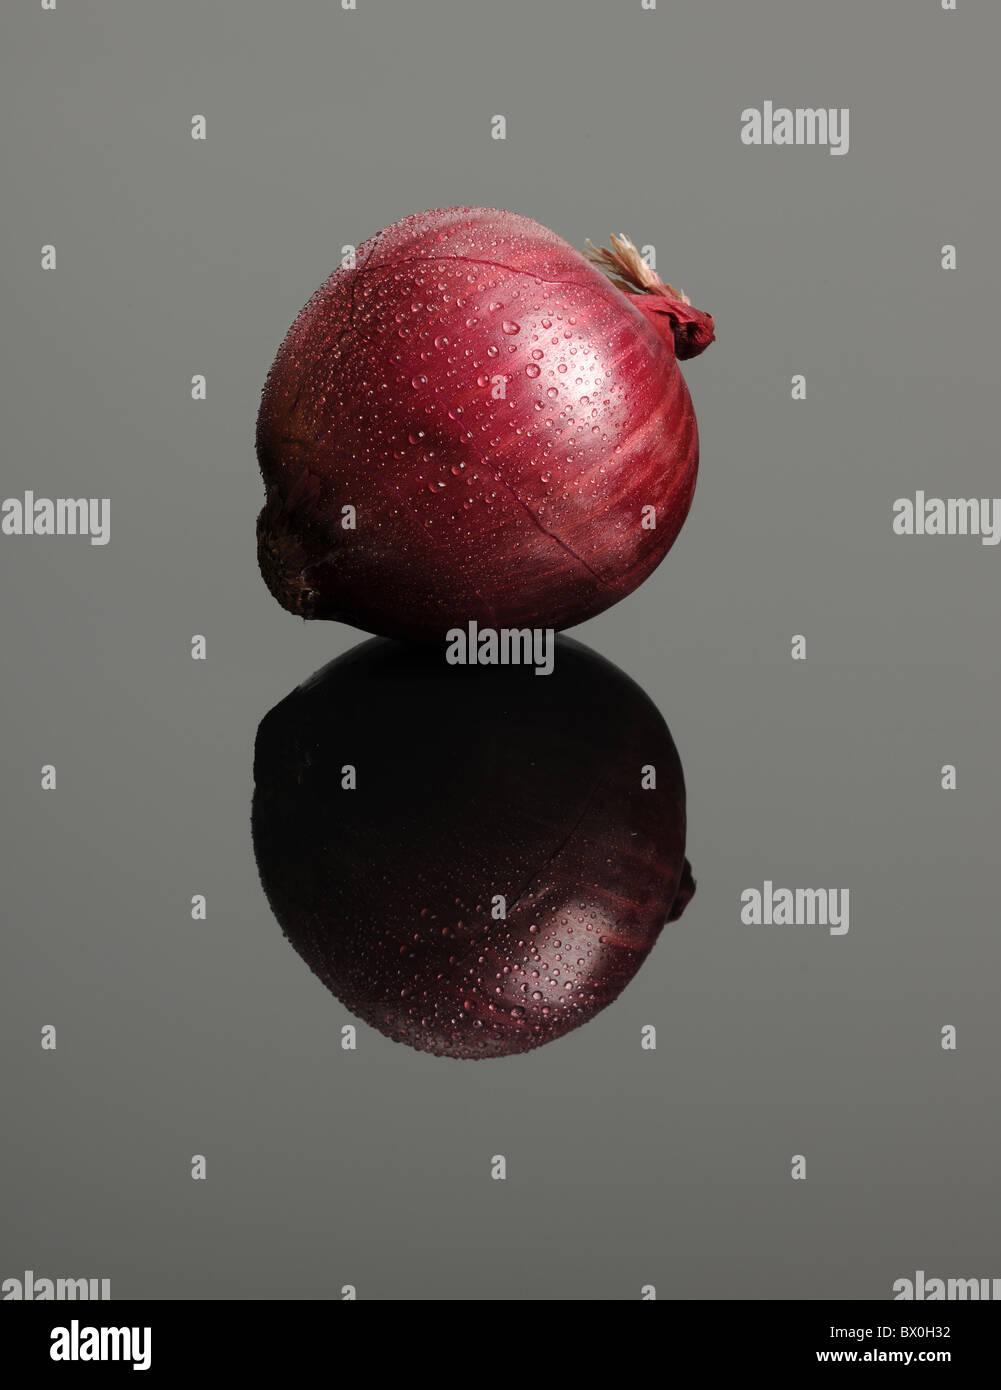 Red onion with condensation droplets on glass table - Stock Image